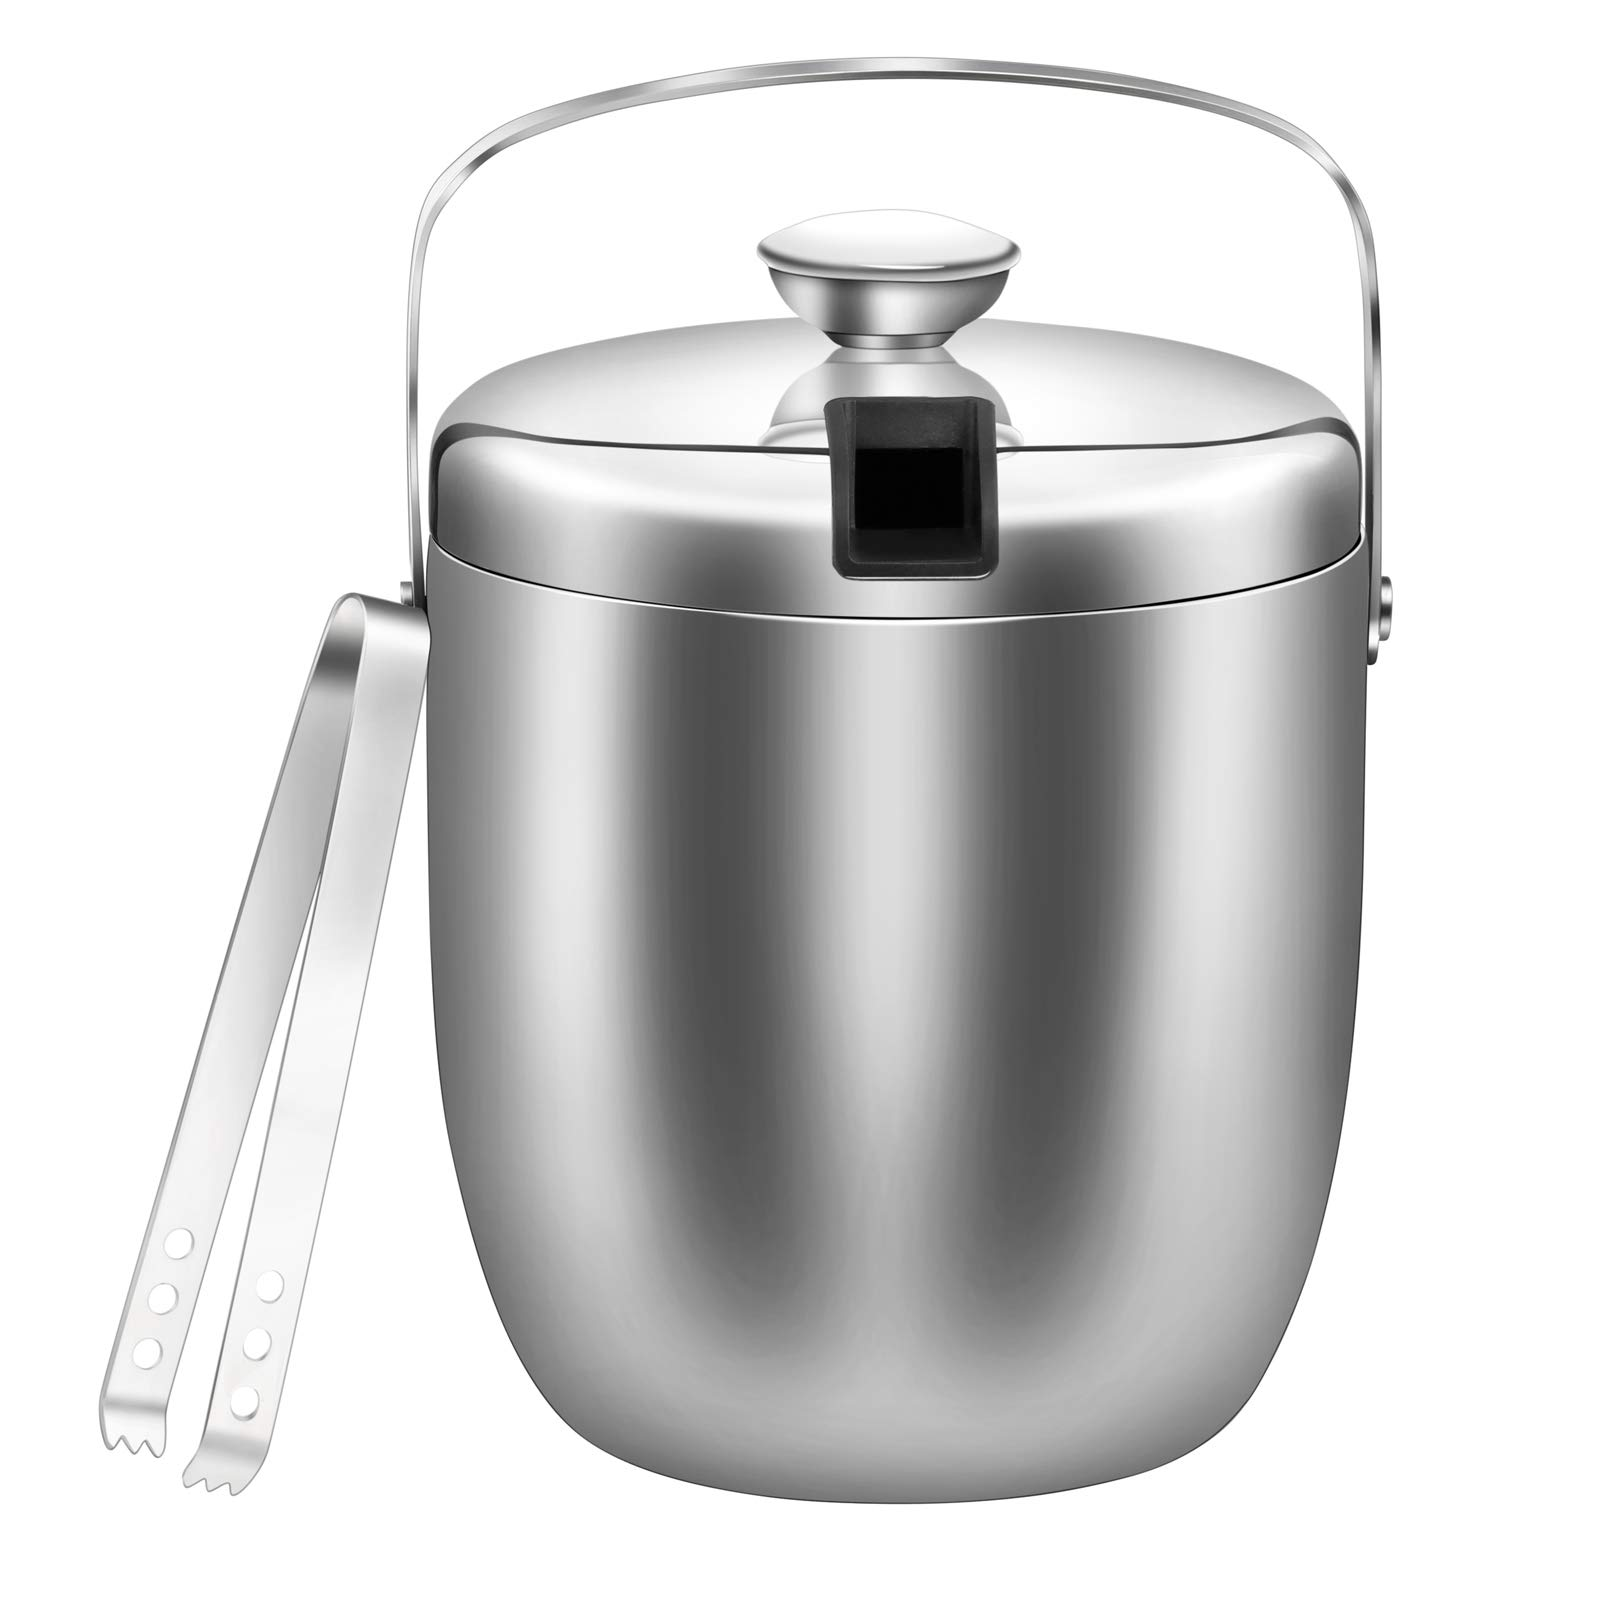 GWHOLE Double Wall Stainless Steel Ice Bucket with Tong, 3 Liter